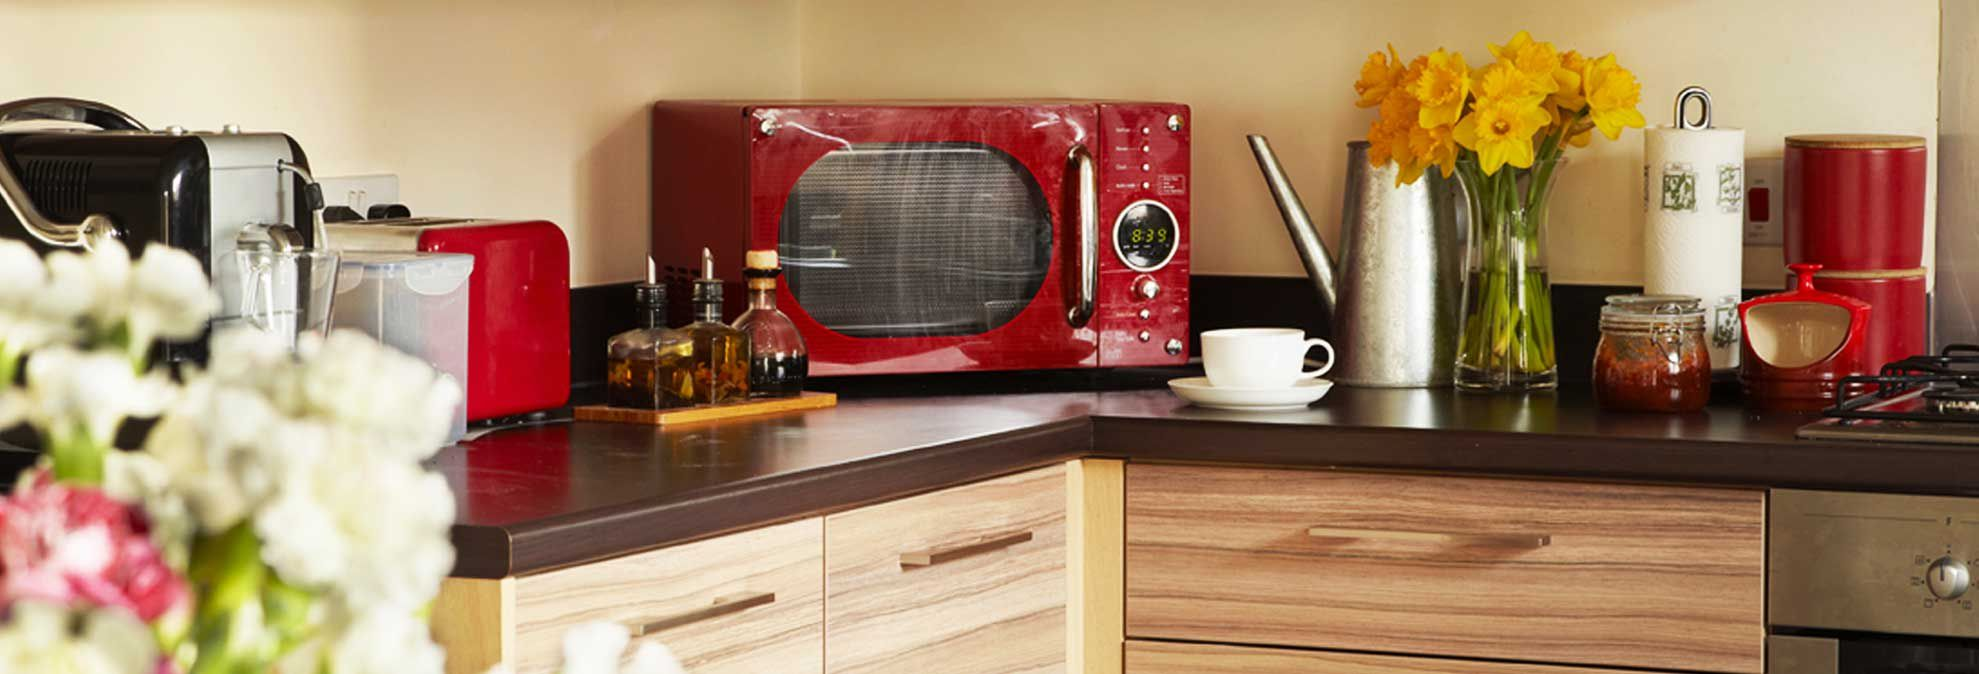 Best Countertop Microwaves For 150 Or Less Best Countertop